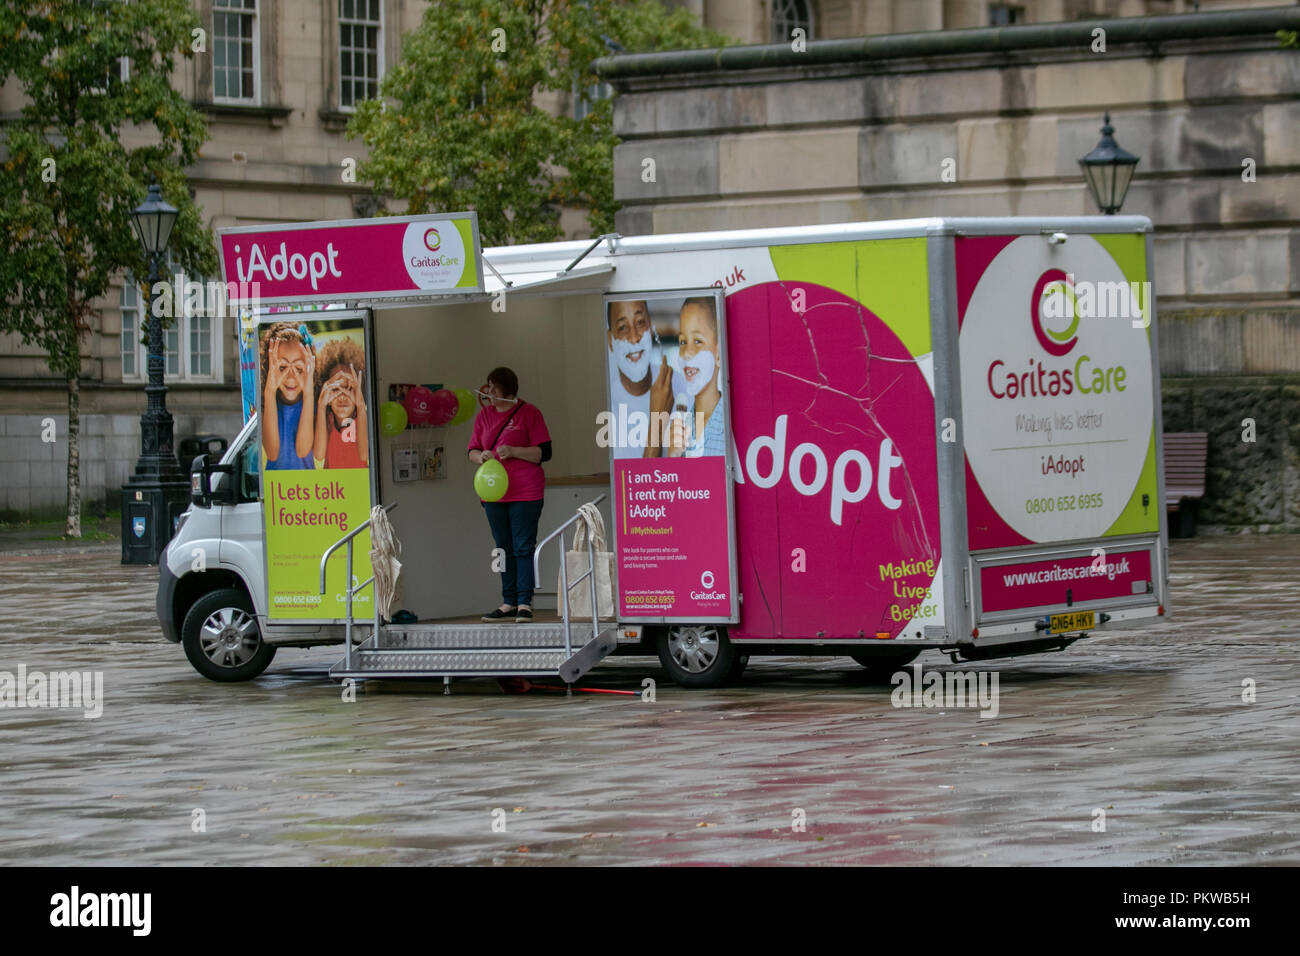 iAdopt CaritaCare fostering promotion vehicle, Preston, UK - Stock Image